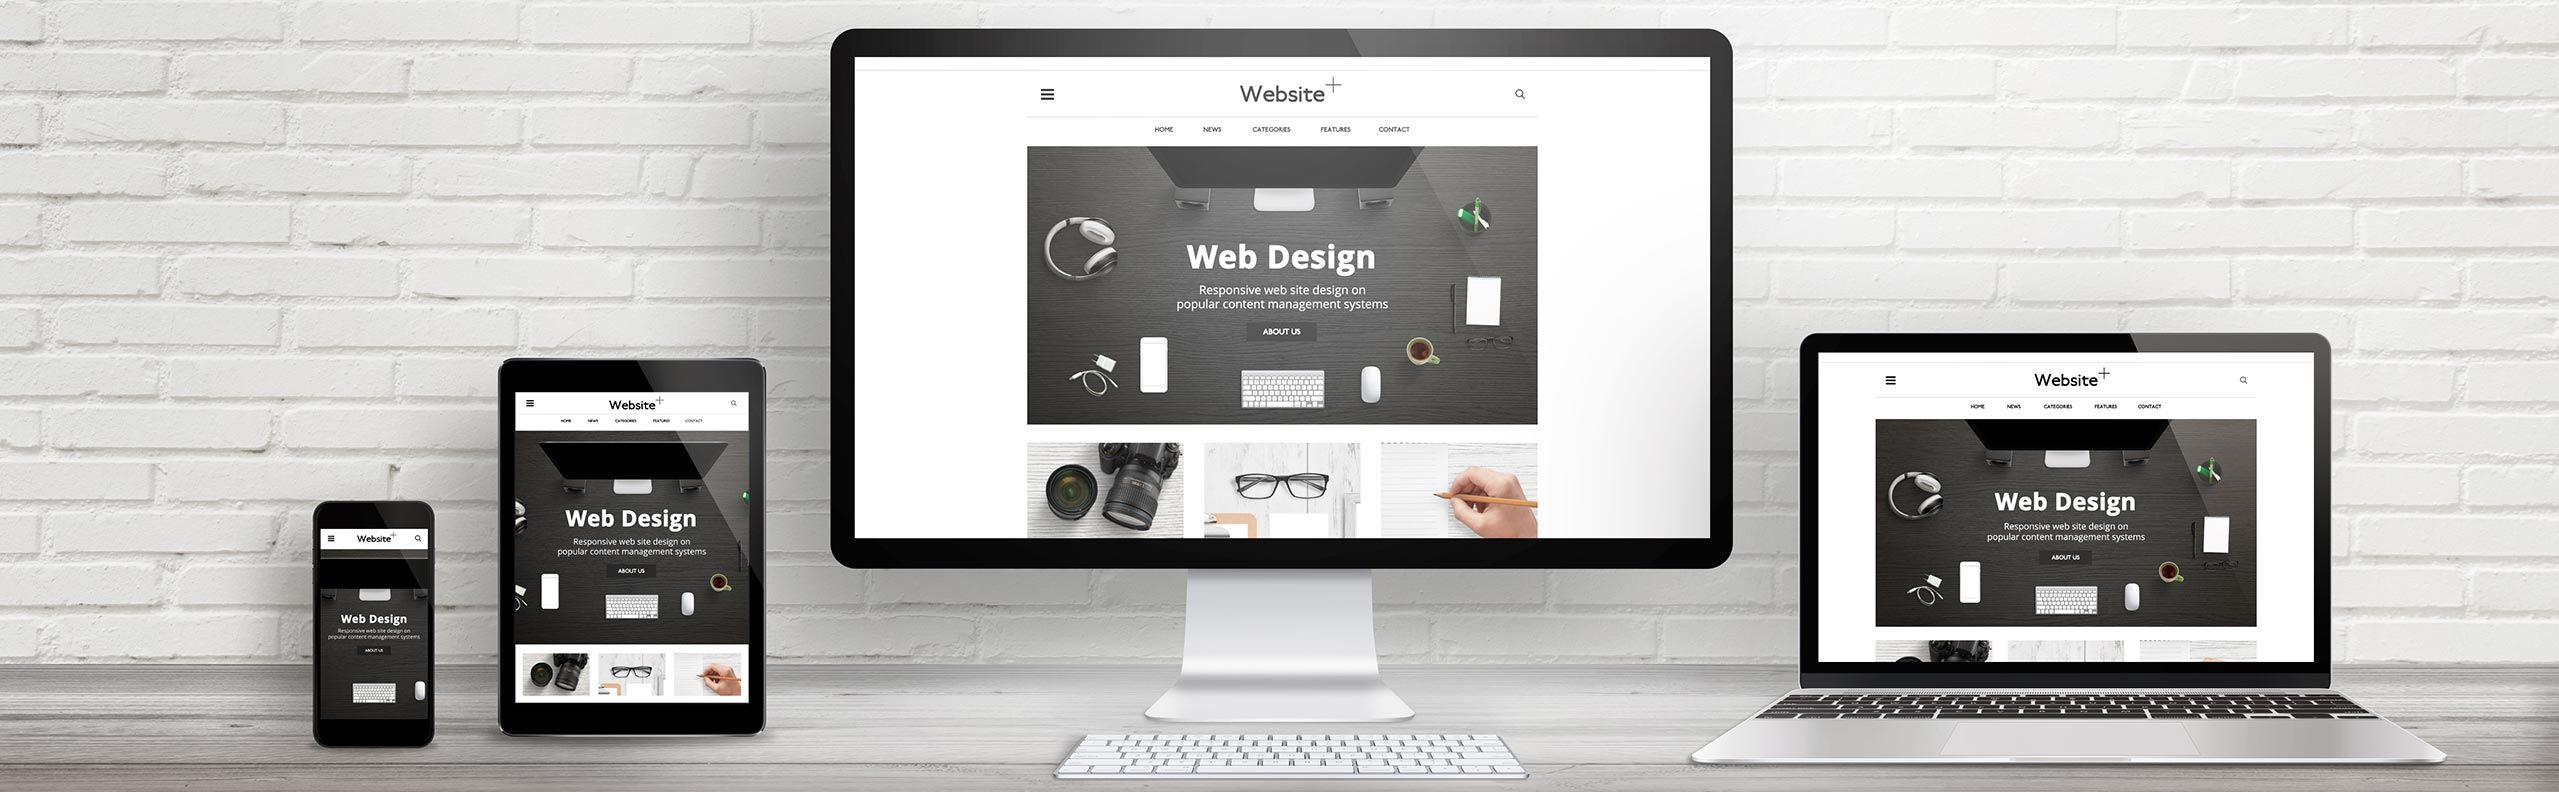 35 Easy Website Builders for Small Businesses